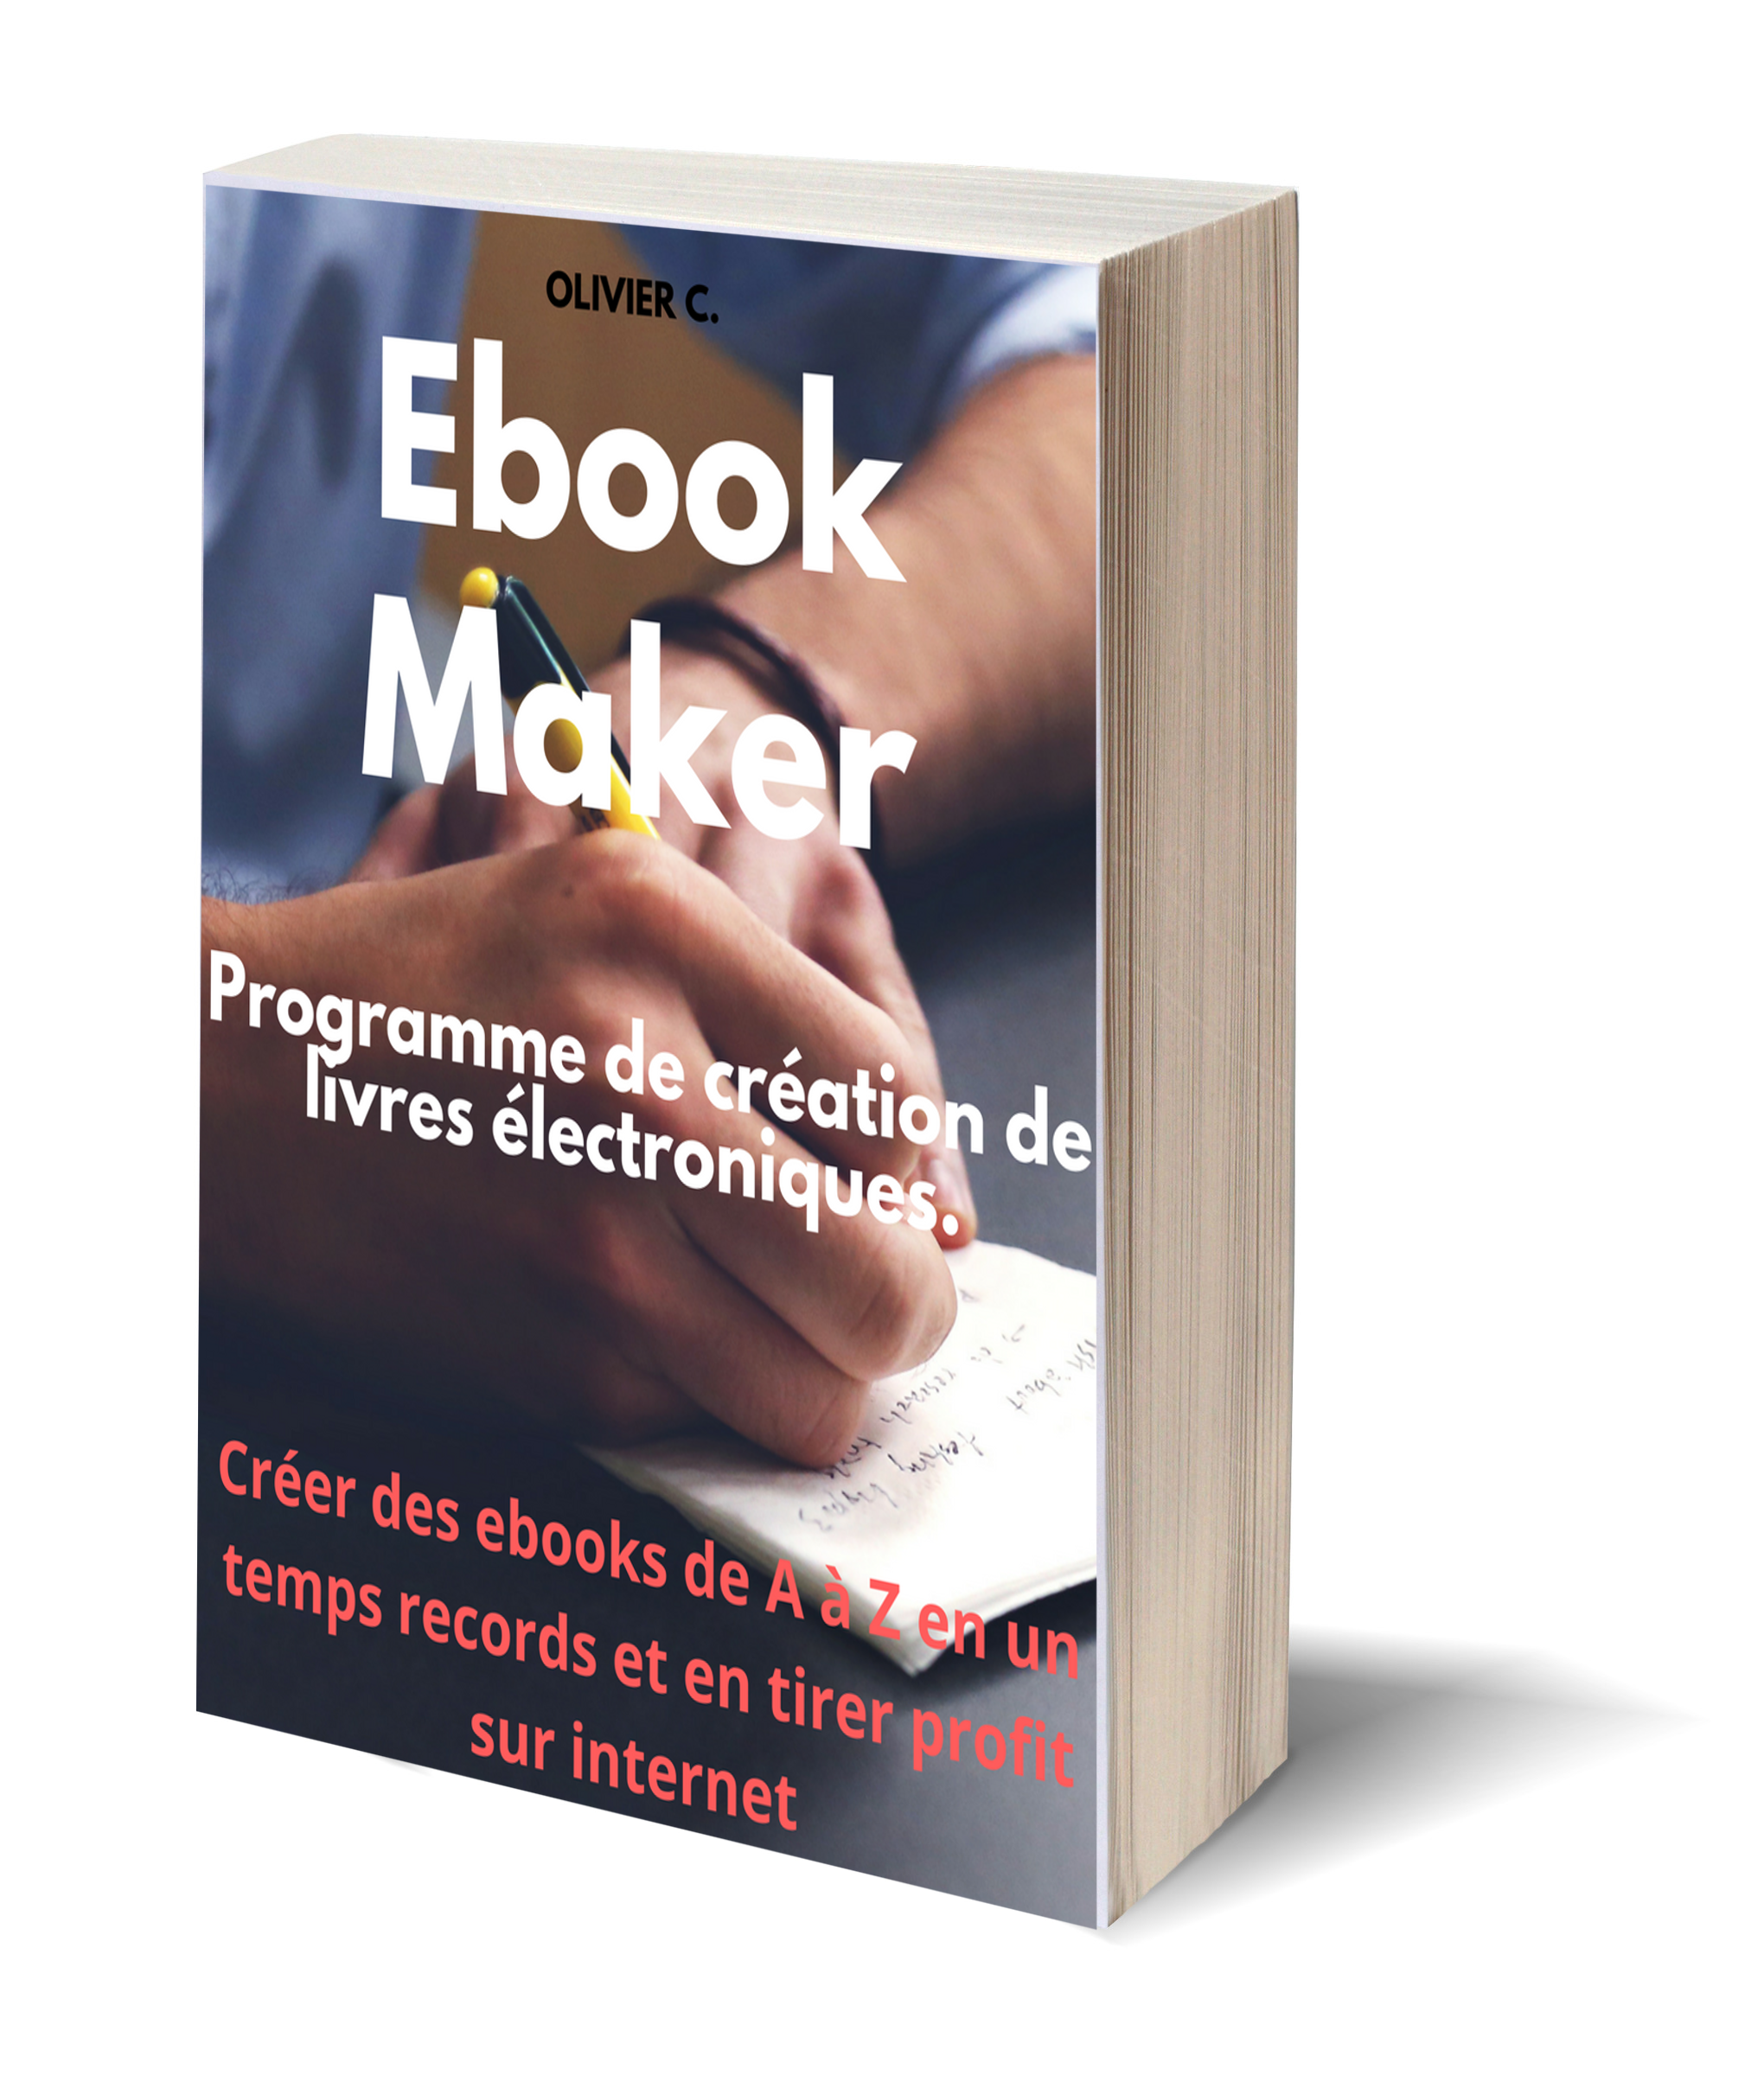 telecharger ebook gratuit sur les-ebooks